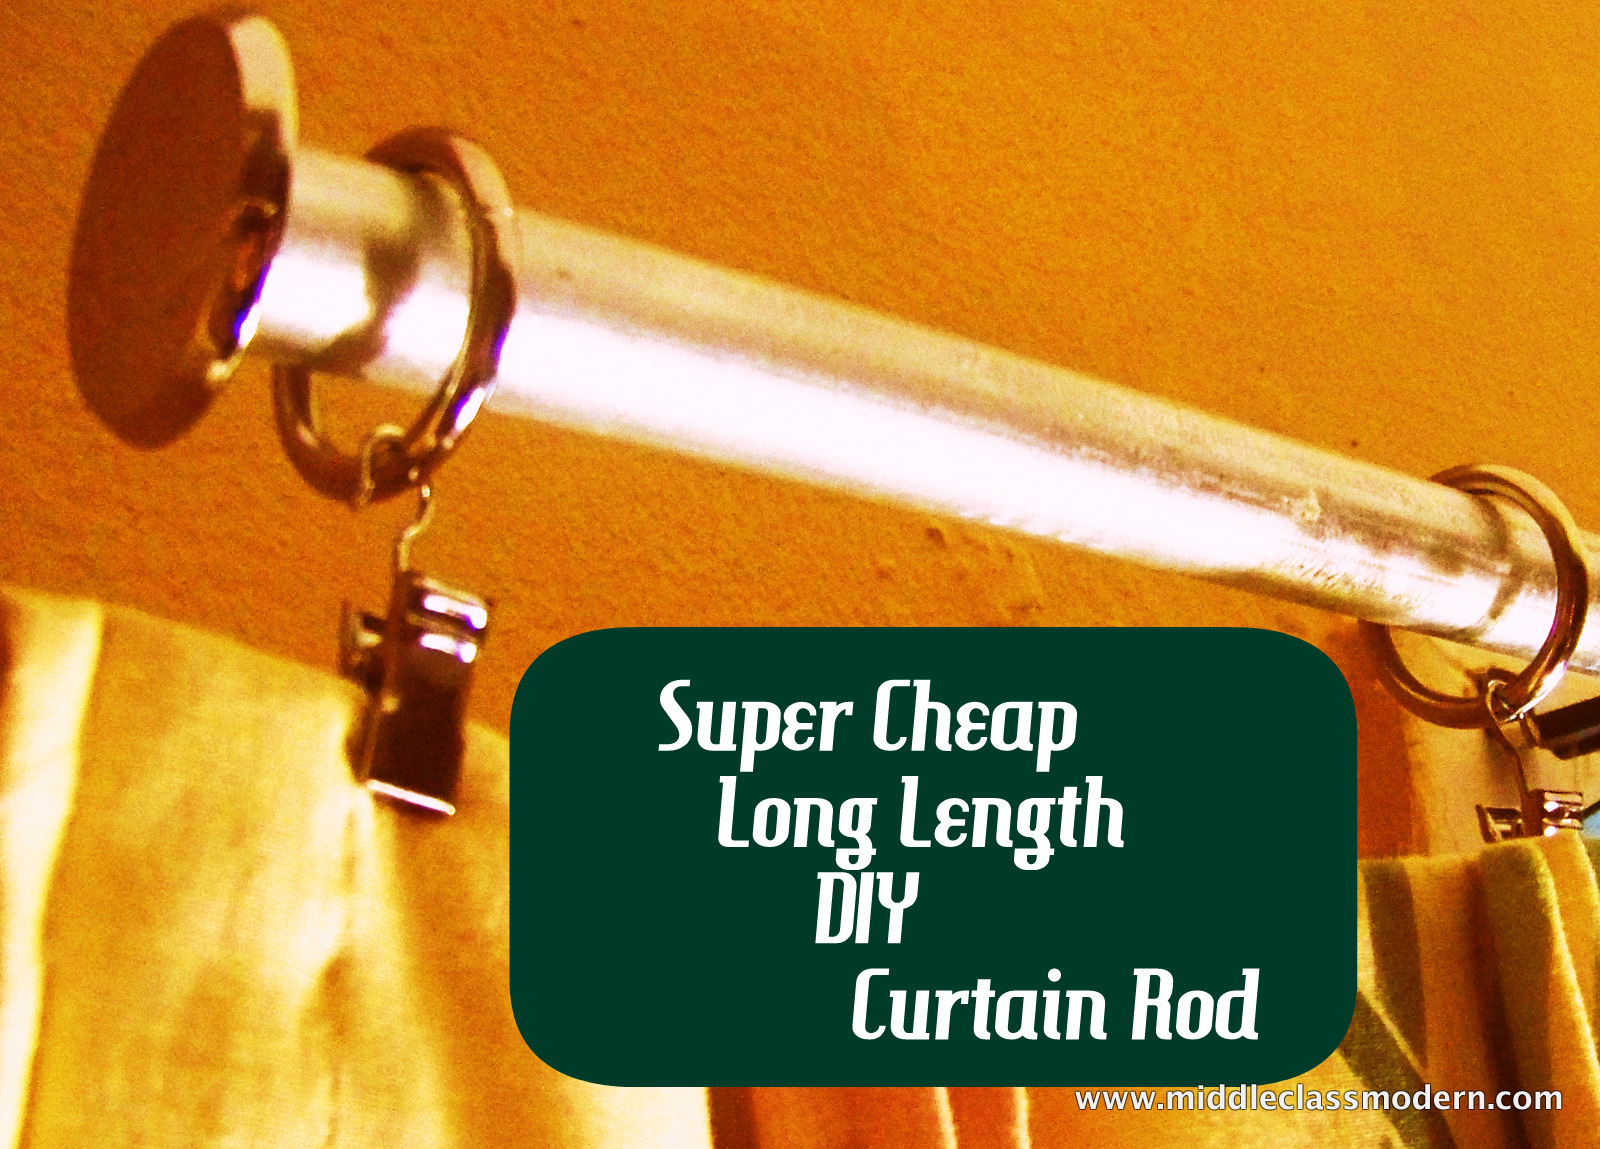 Diy curtain rods conduit - A Nice Strong Rod Diy Curtain Hanging